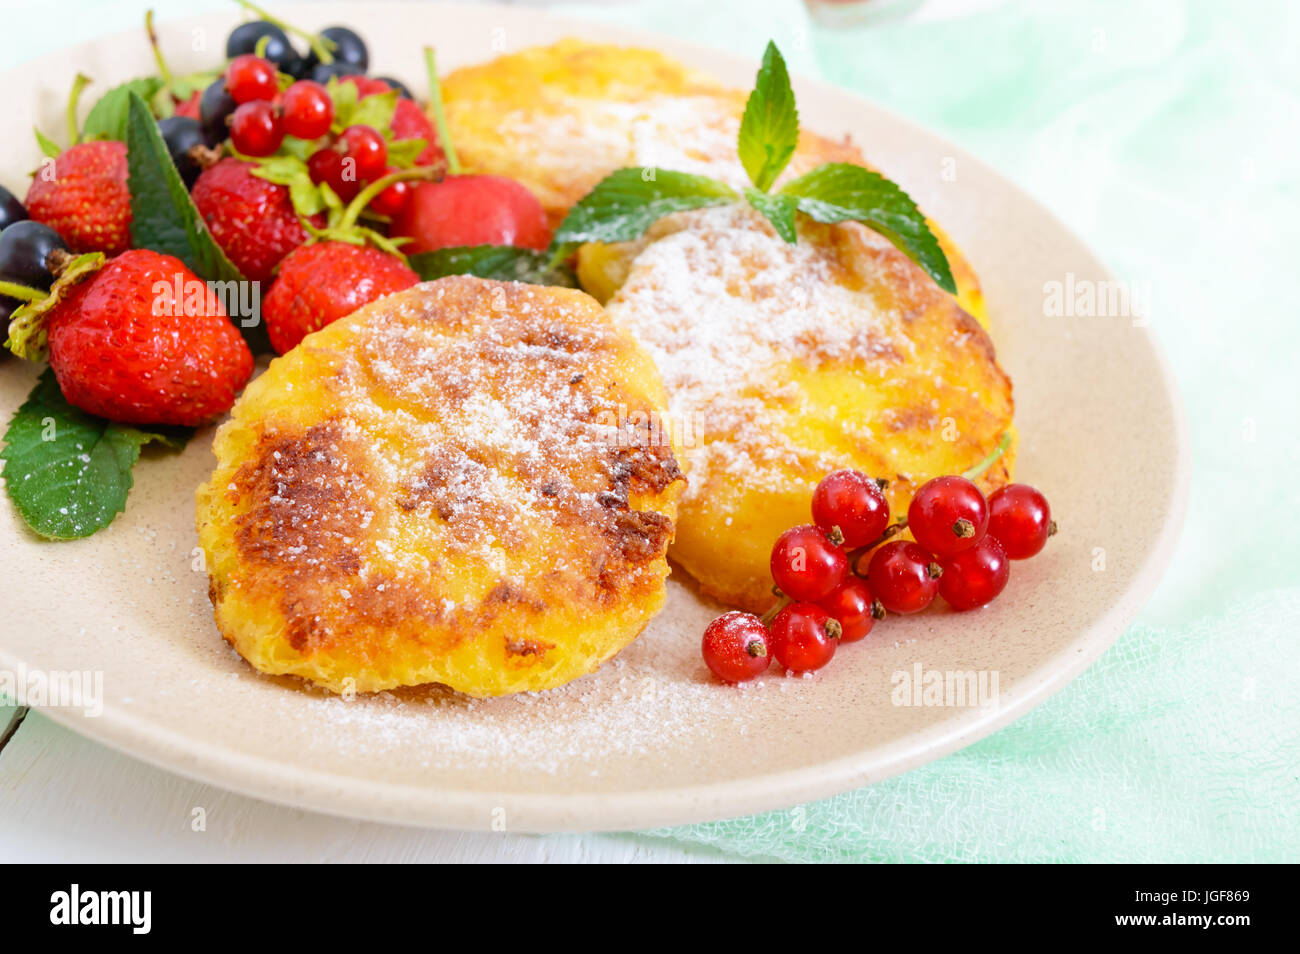 Stupendous Golden Cottage Cheese Pancakes With Fresh Berries On A Plate Download Free Architecture Designs Rallybritishbridgeorg